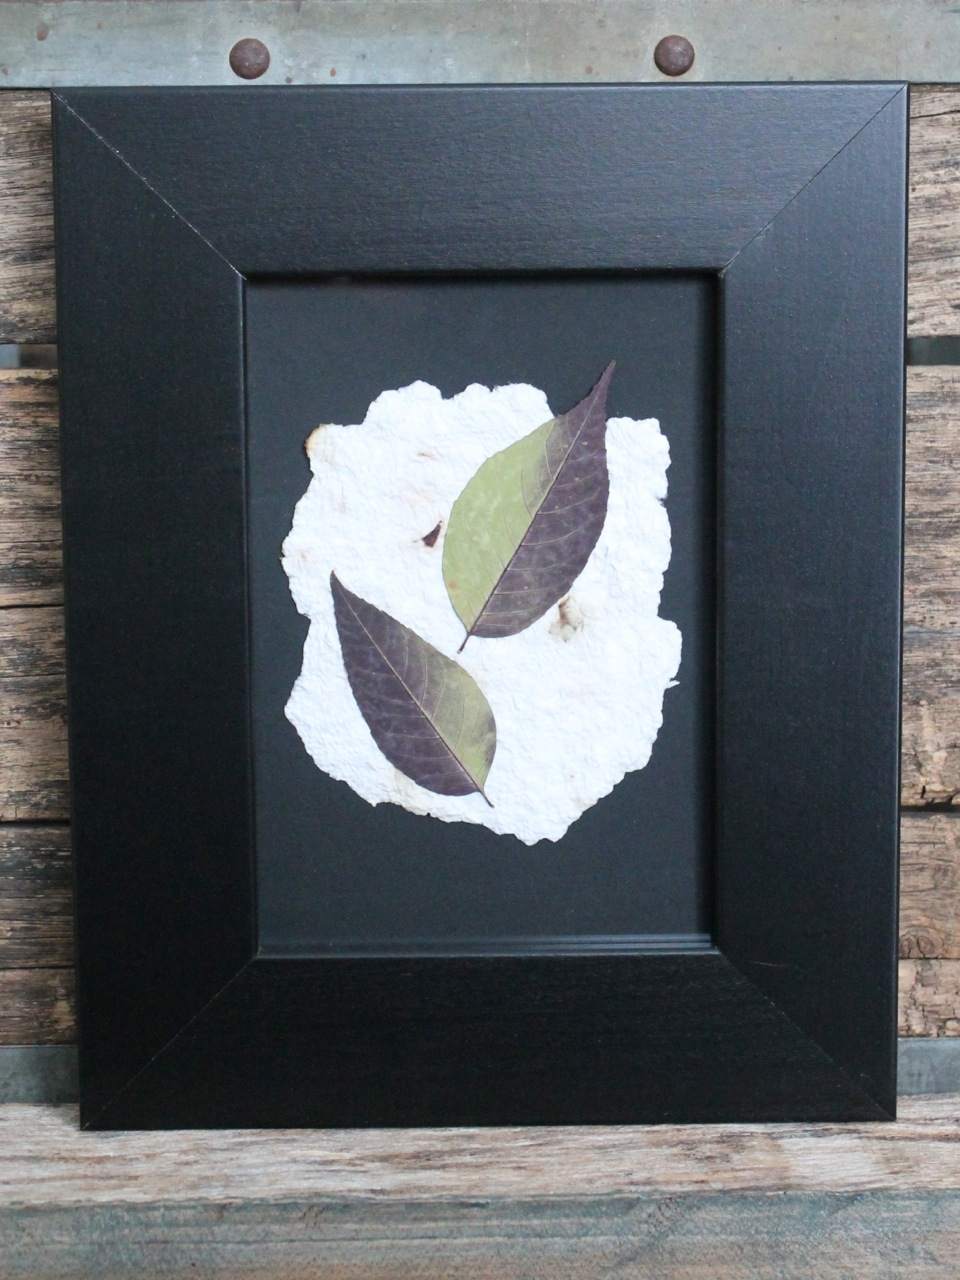 Framed-Leaves-5X7-Black-Abstract-Frame